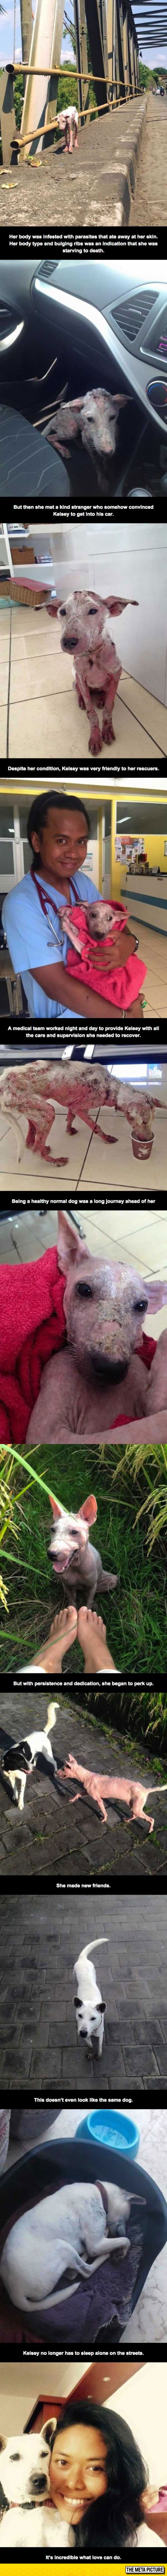 cute-dog-rescue-before-after